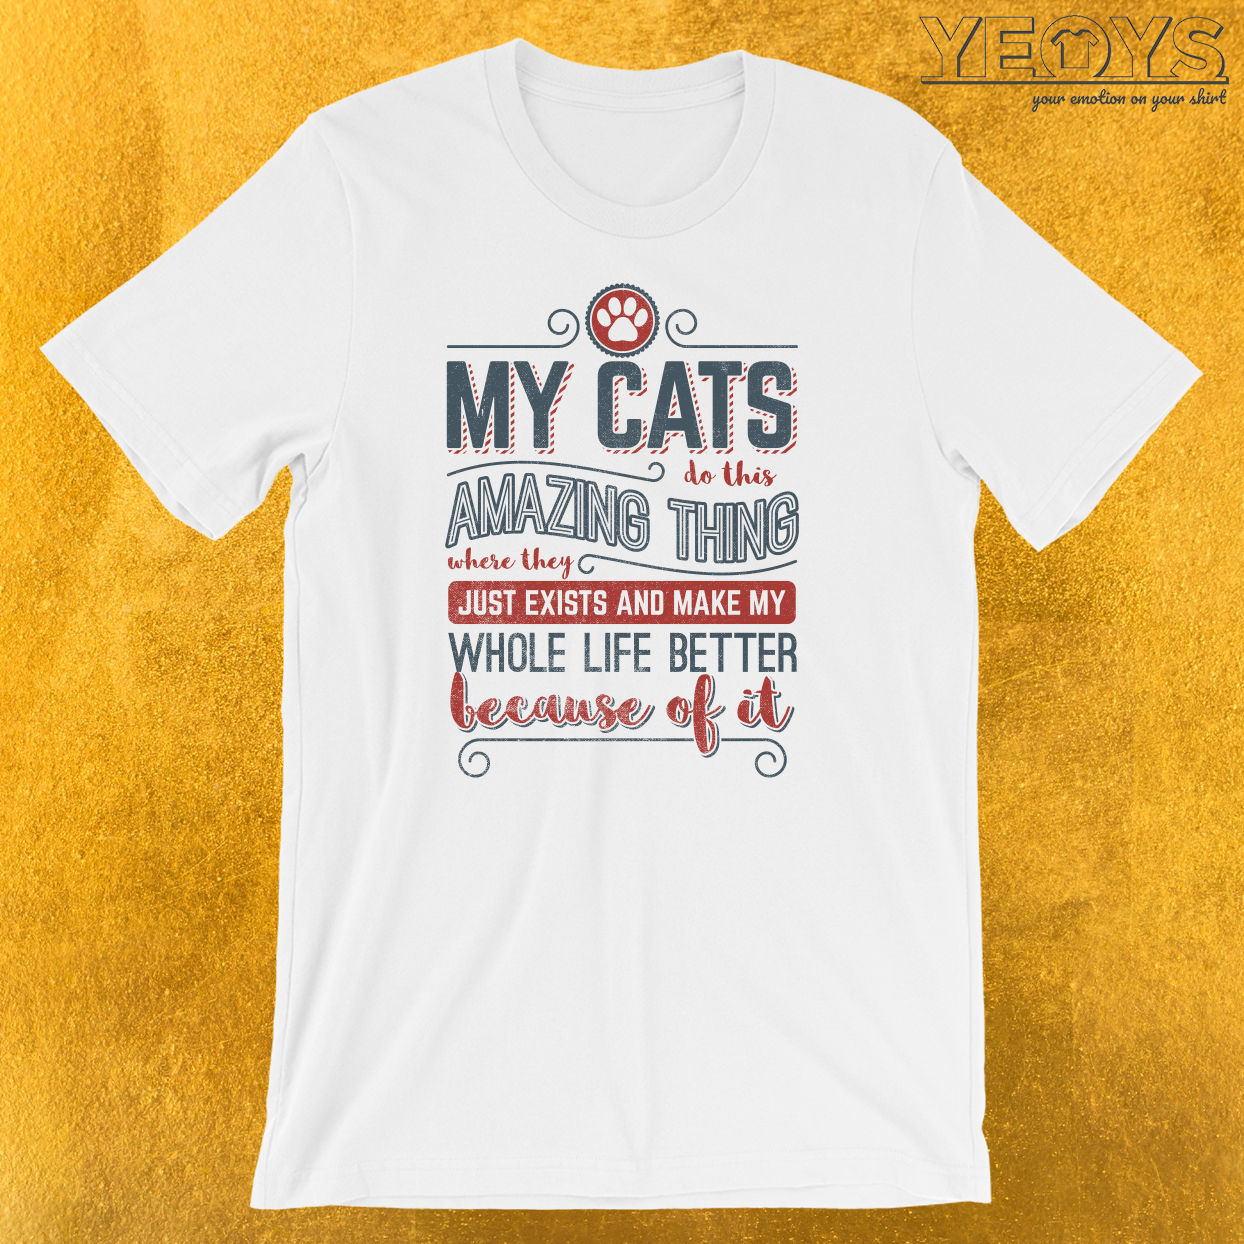 My Cats Do This Amazing Thing T-Shirt